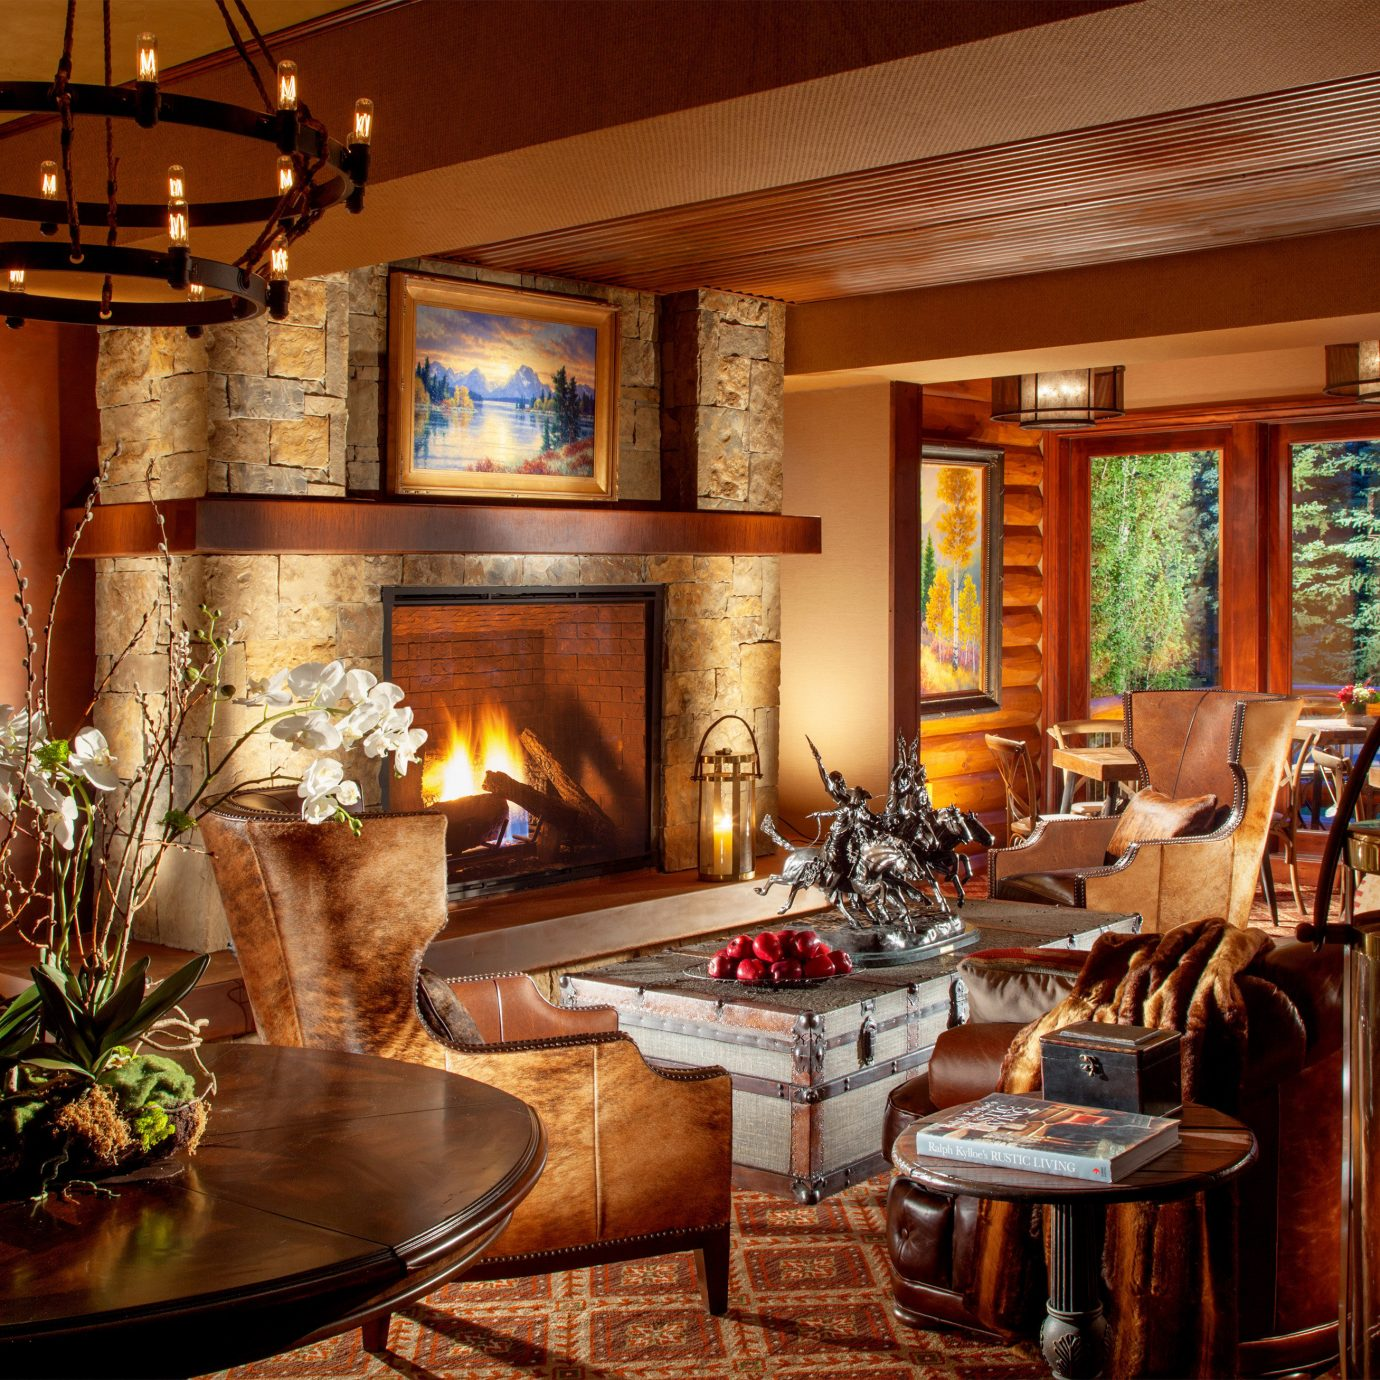 Budget Country Family Fireplace Lobby Lodge Lounge property home living room mansion recreation room cottage